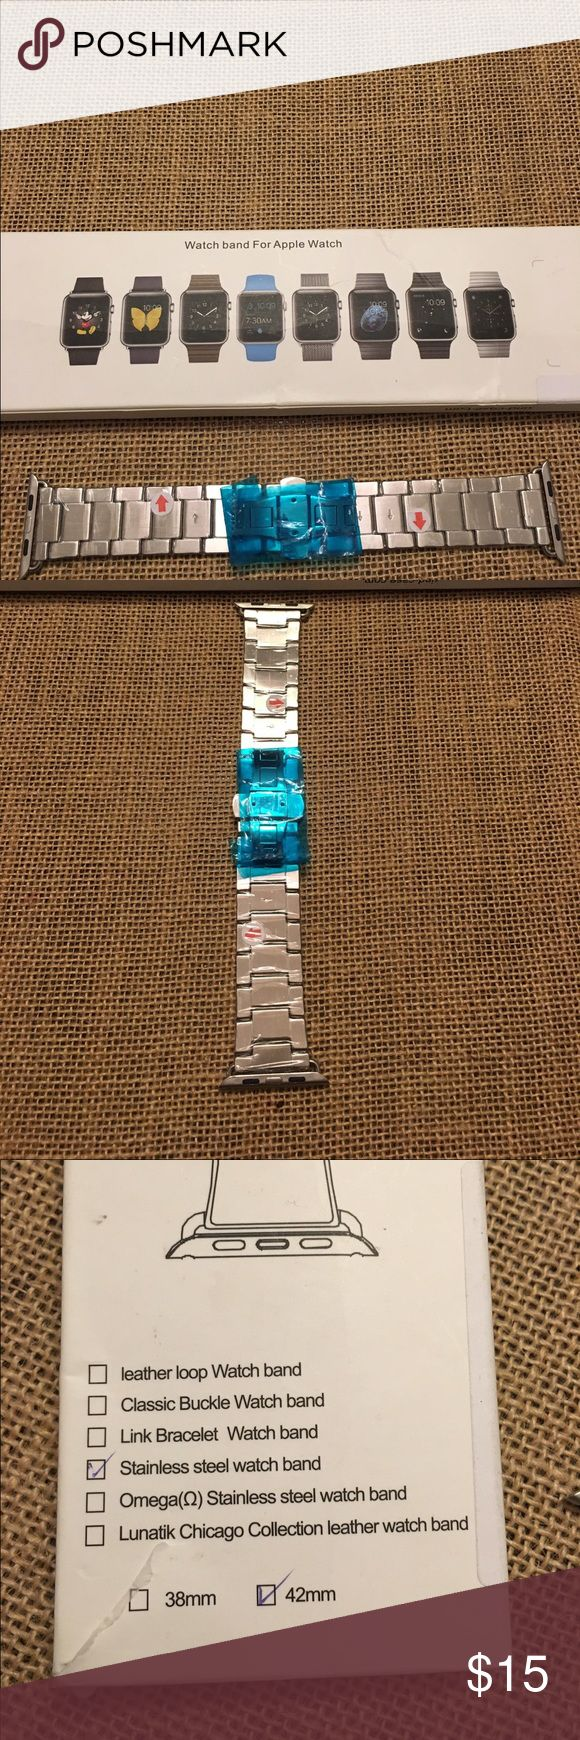 Apple Watch Band Apple Watch band! Stainless steel band. 44mm and has 1 extra link.  Can used for men or woman Watch. Have never been used, still in original plastic. Fits series 1 or 2. Happy poshing  Leakind Accessories Watches